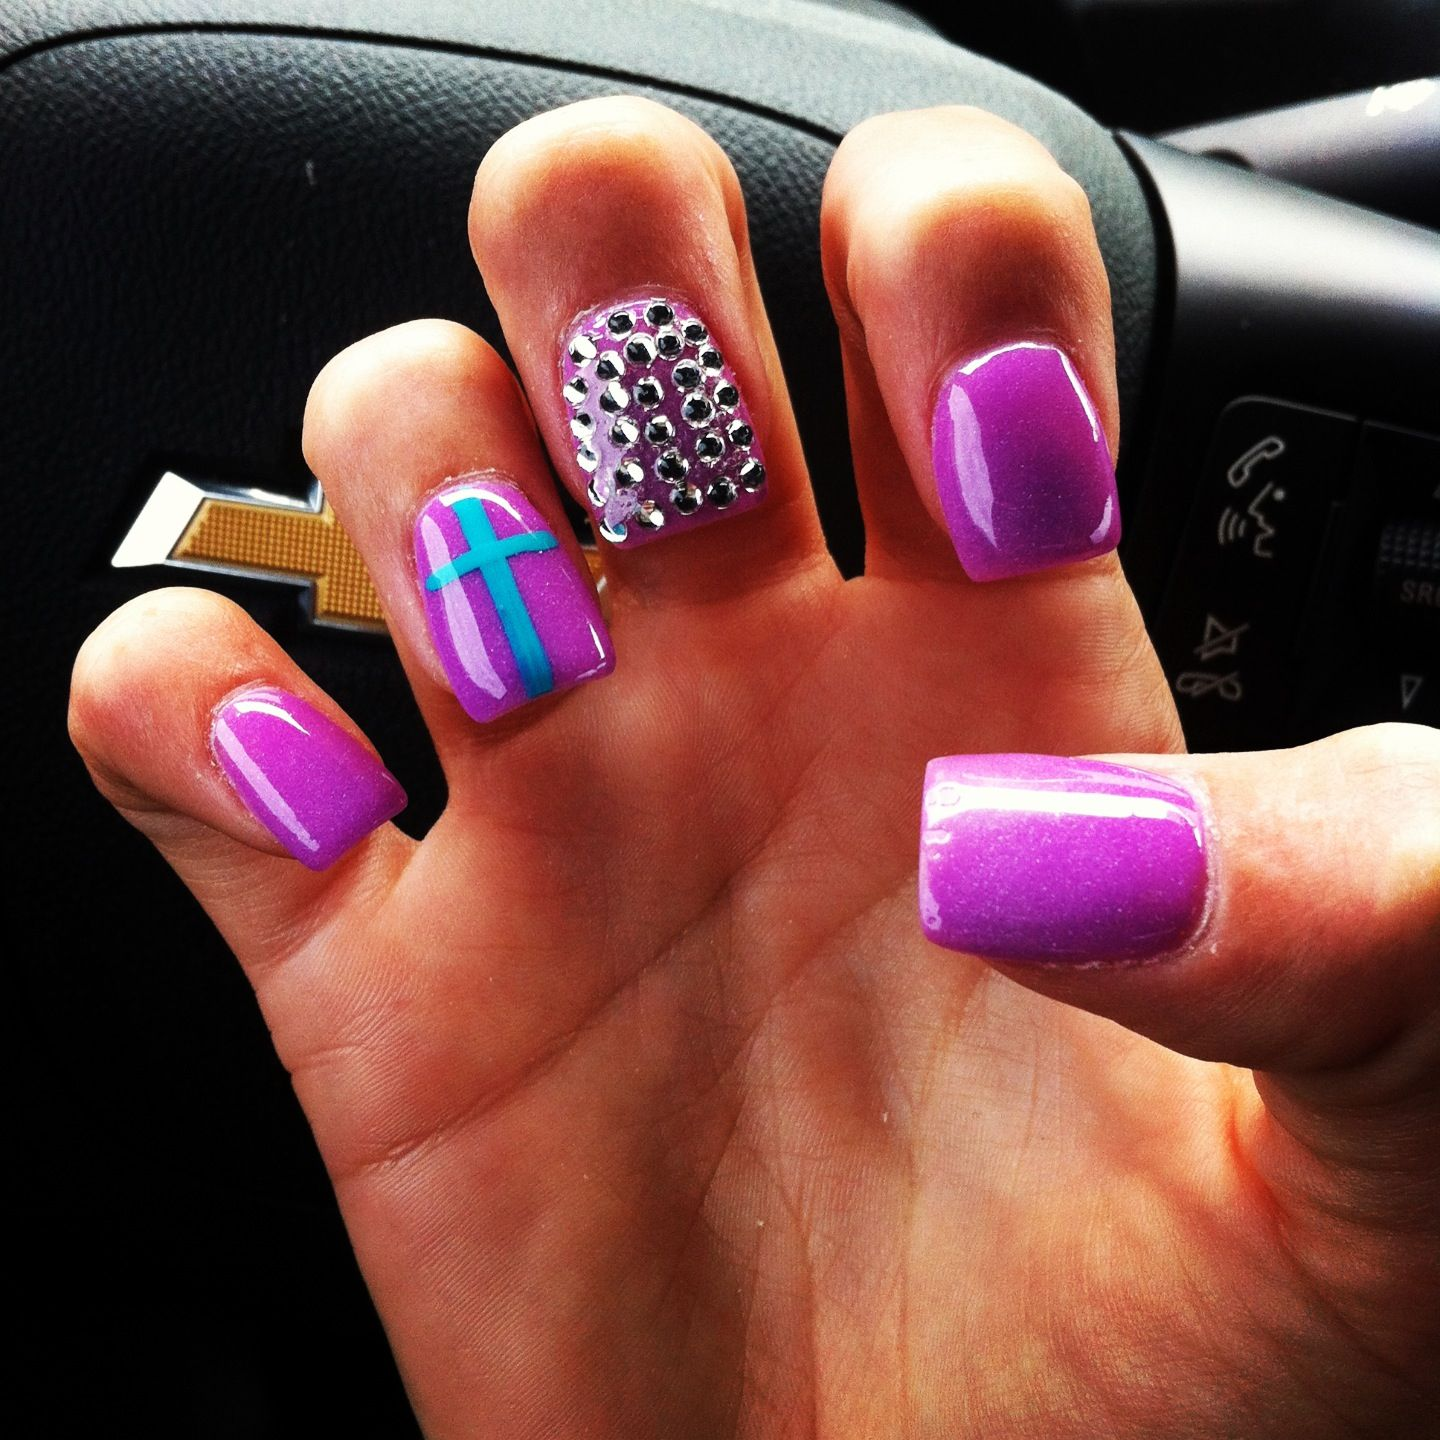 Purple Powder Fake Nails With Rhinestones And Turquoise Cross Design